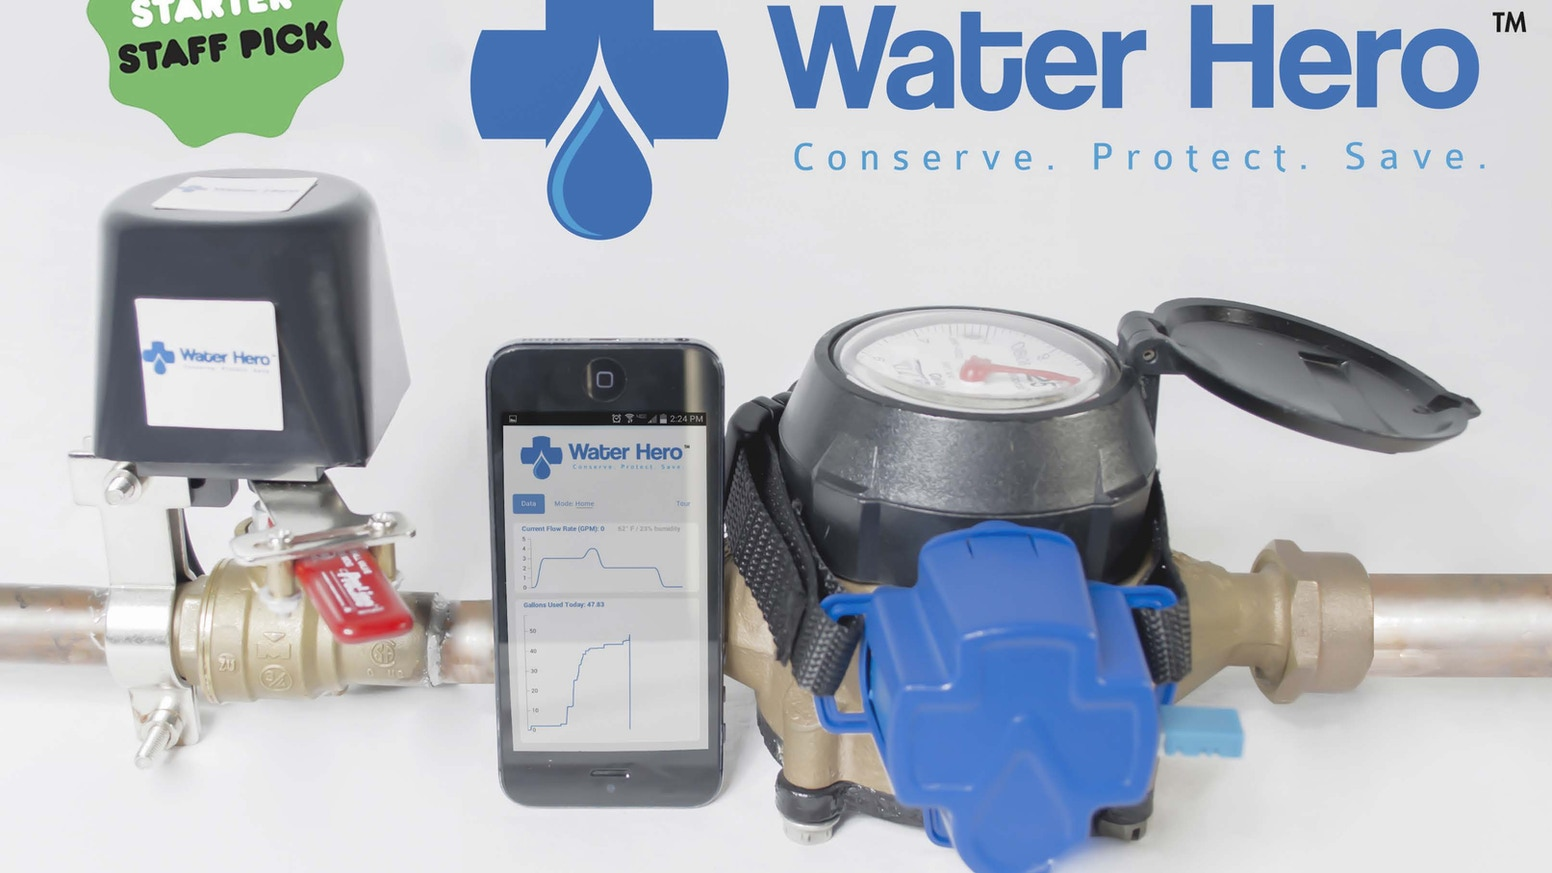 Water Hero Protection From Major Pipe Bursts Costly Leaks By Dan Sterling Kickstarter